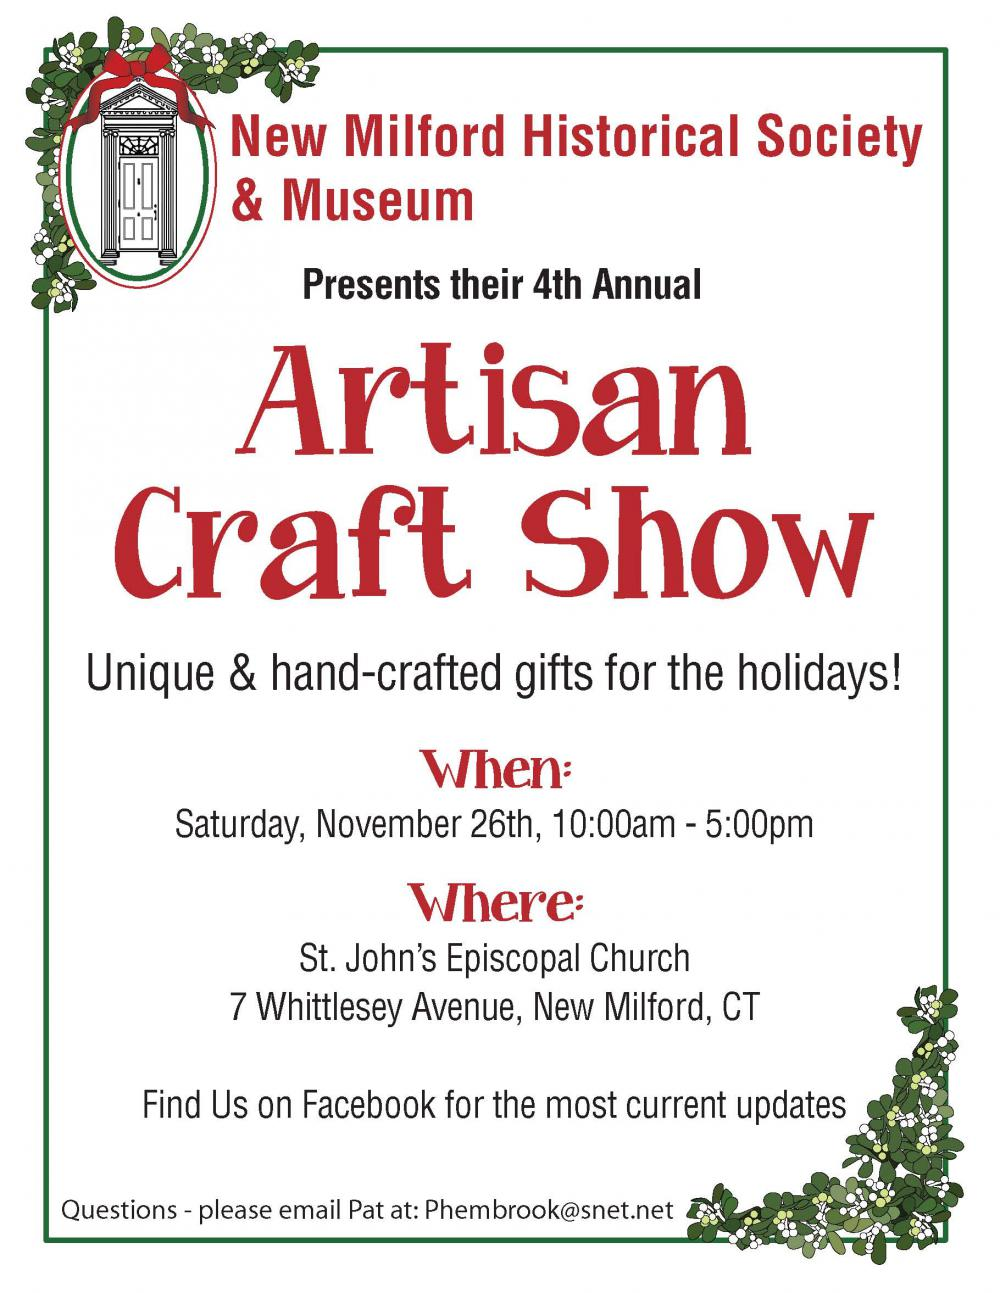 The New Milford Historical Society & Museum